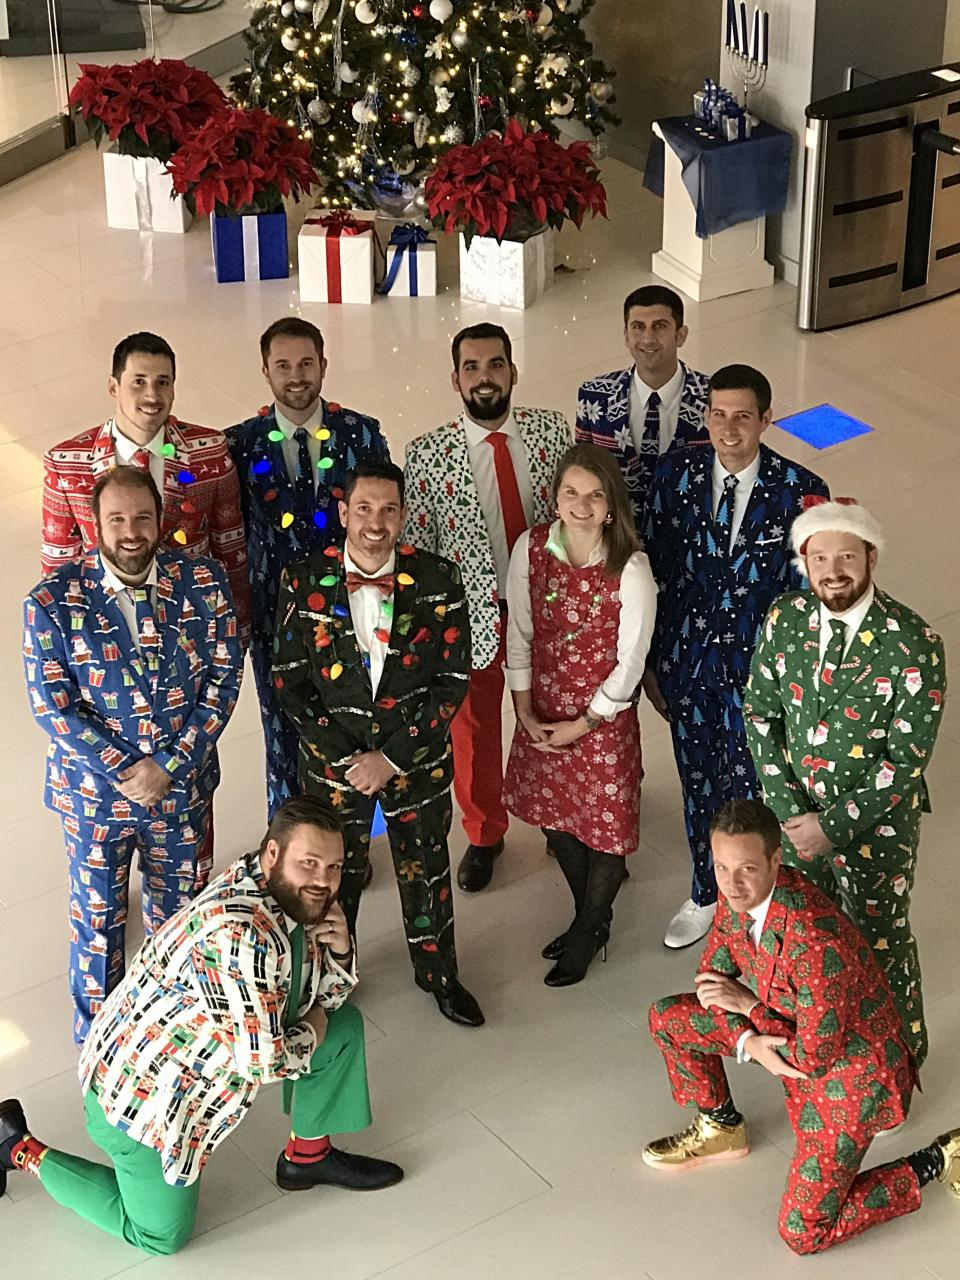 Our colleagues show their holiday spirit by wearing festive outfits, complete with holiday prints and lights